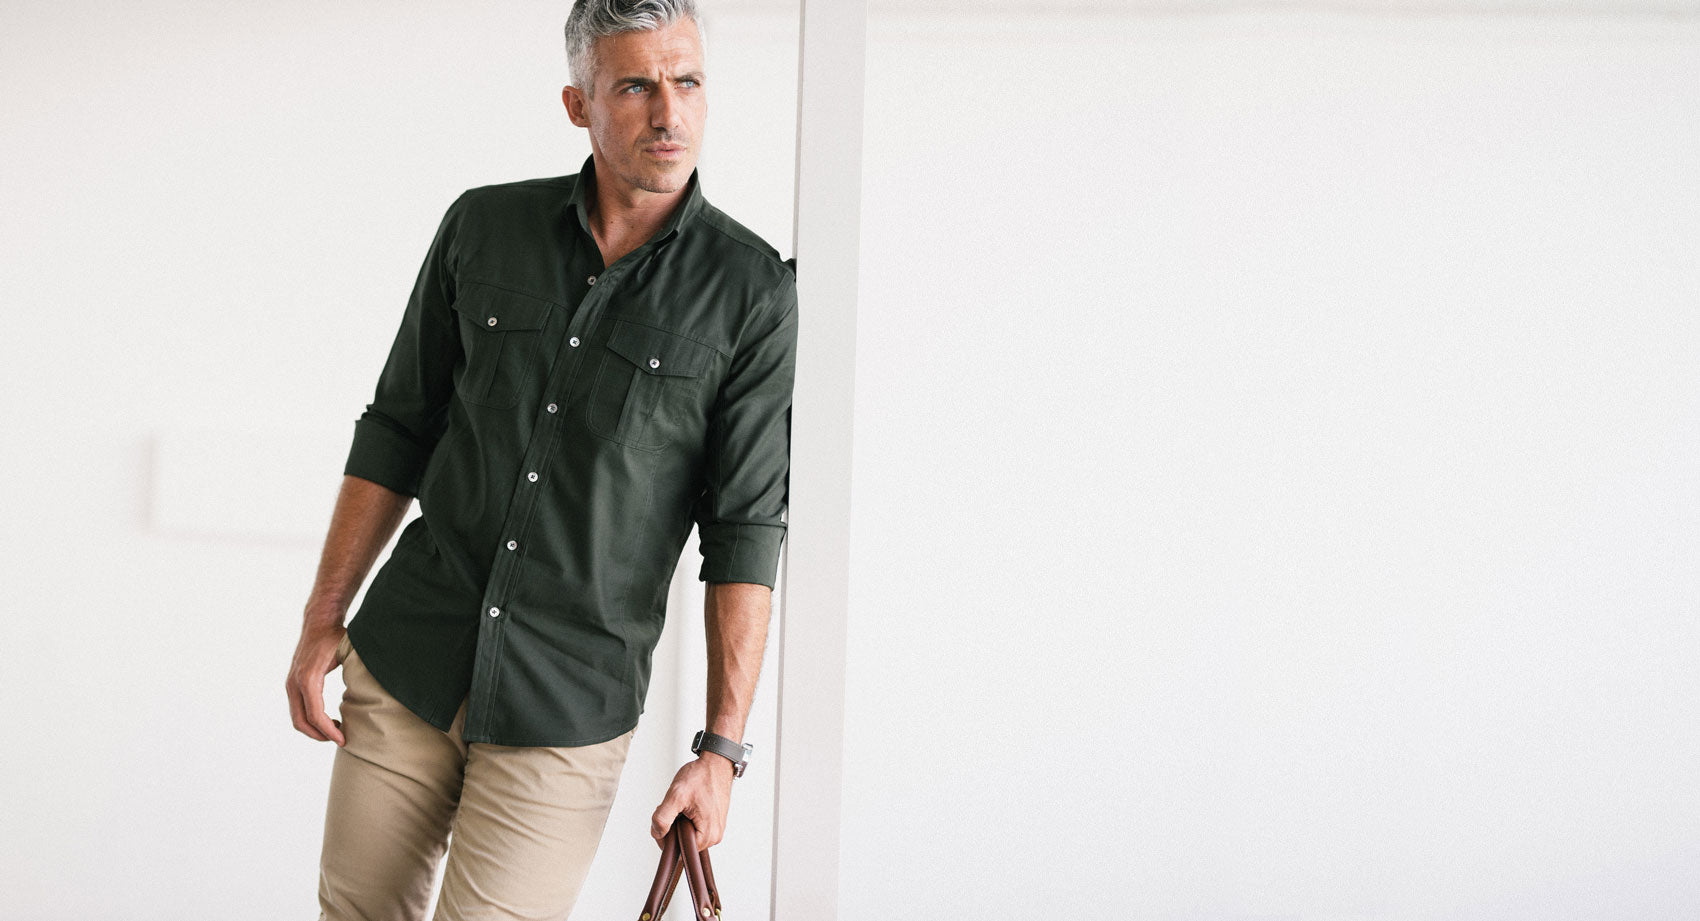 Editor Utility Shirt in olive green